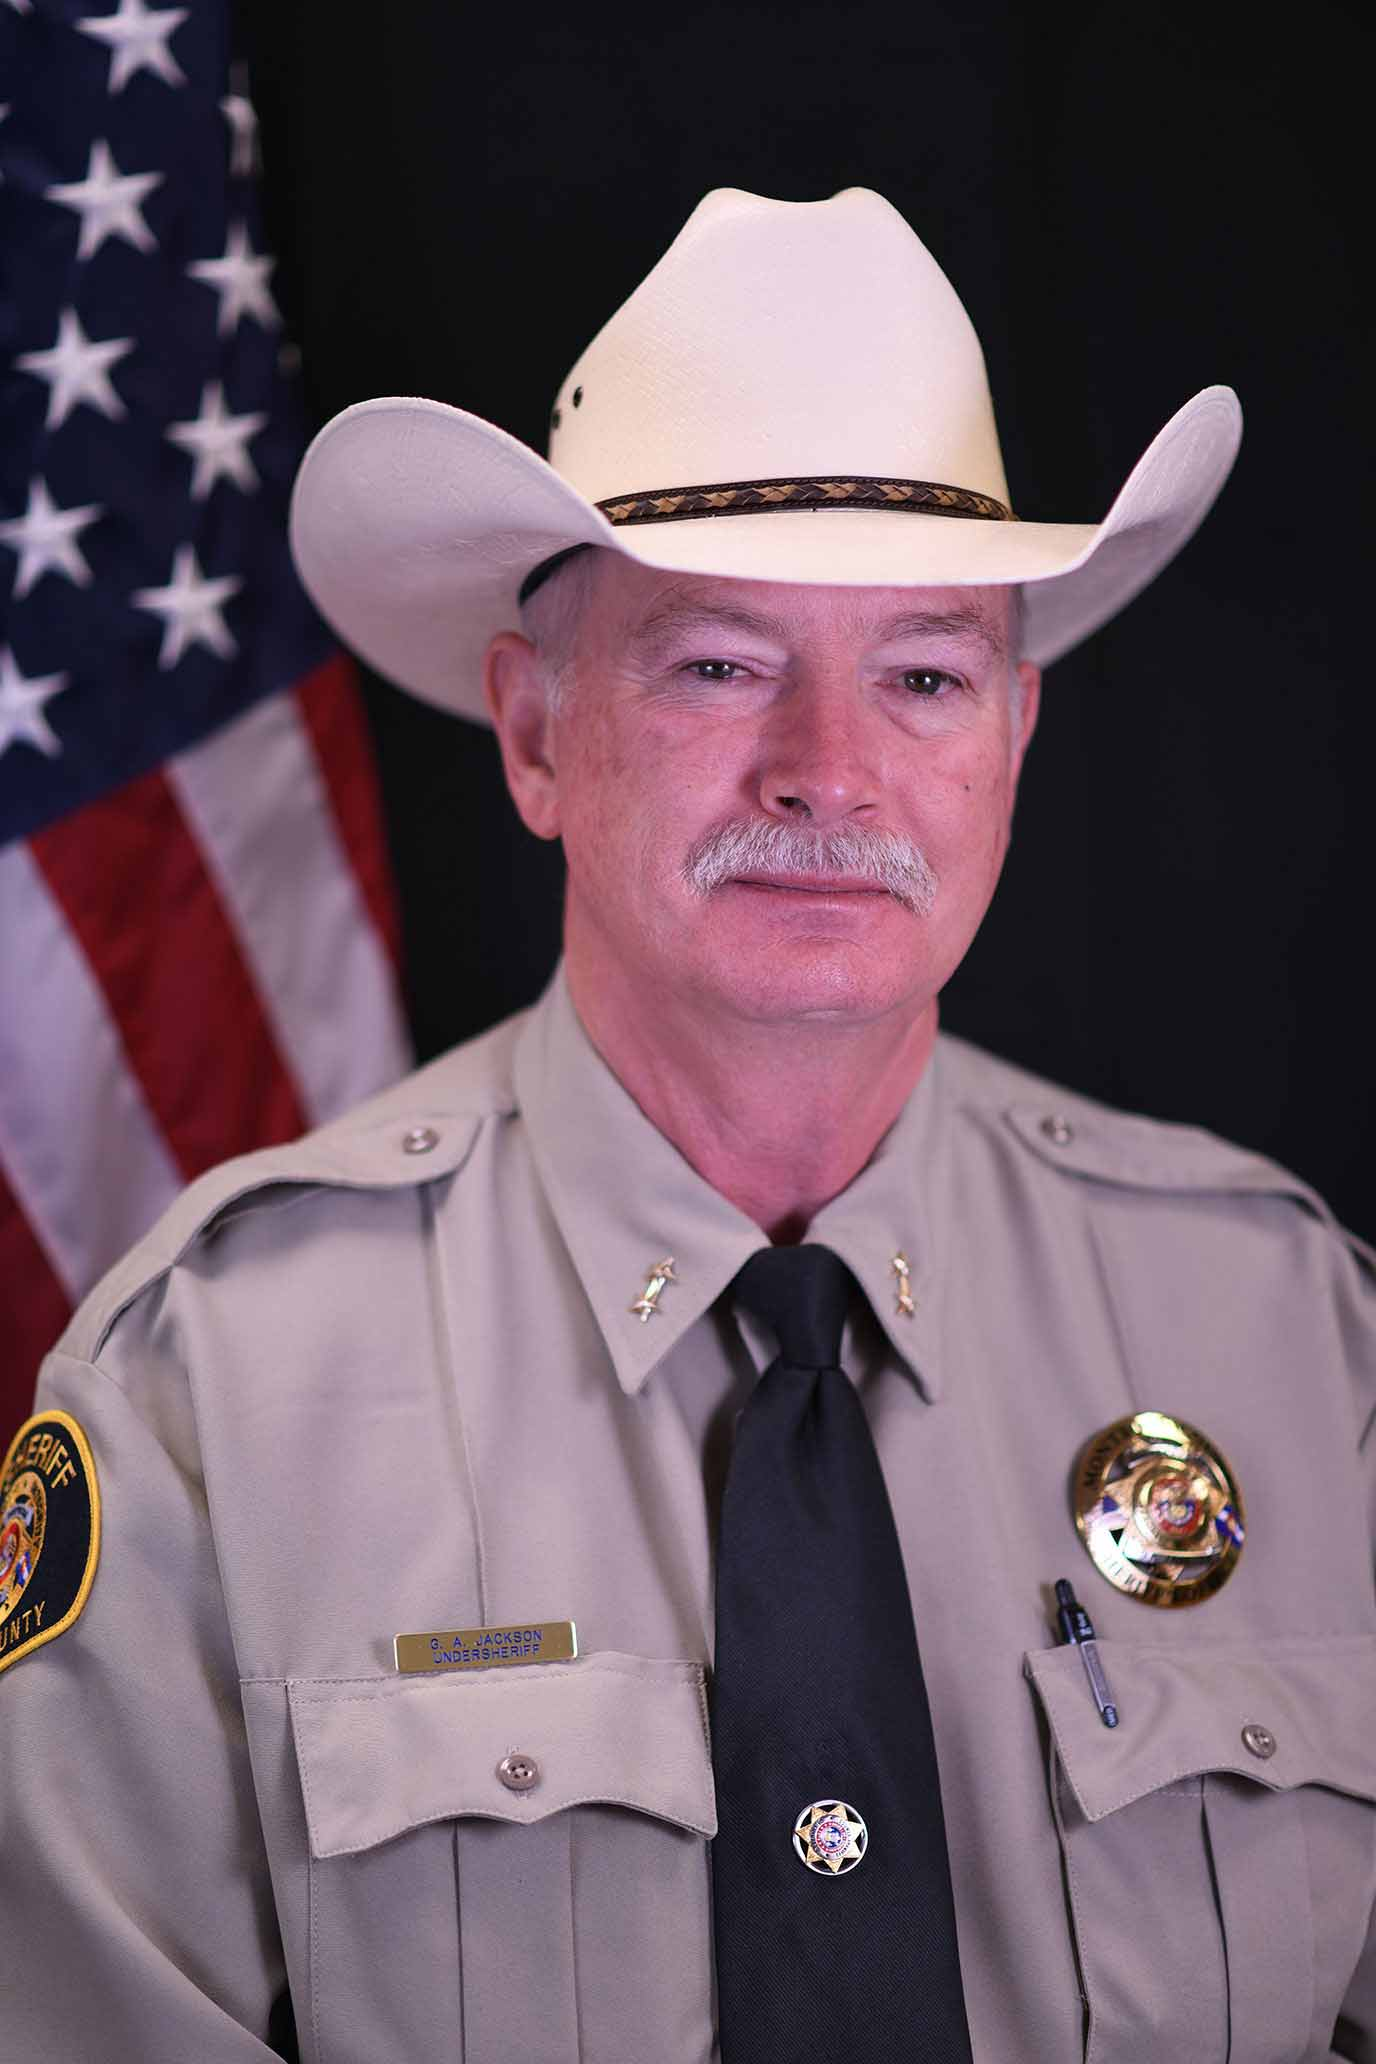 Undersheriff George Jackson